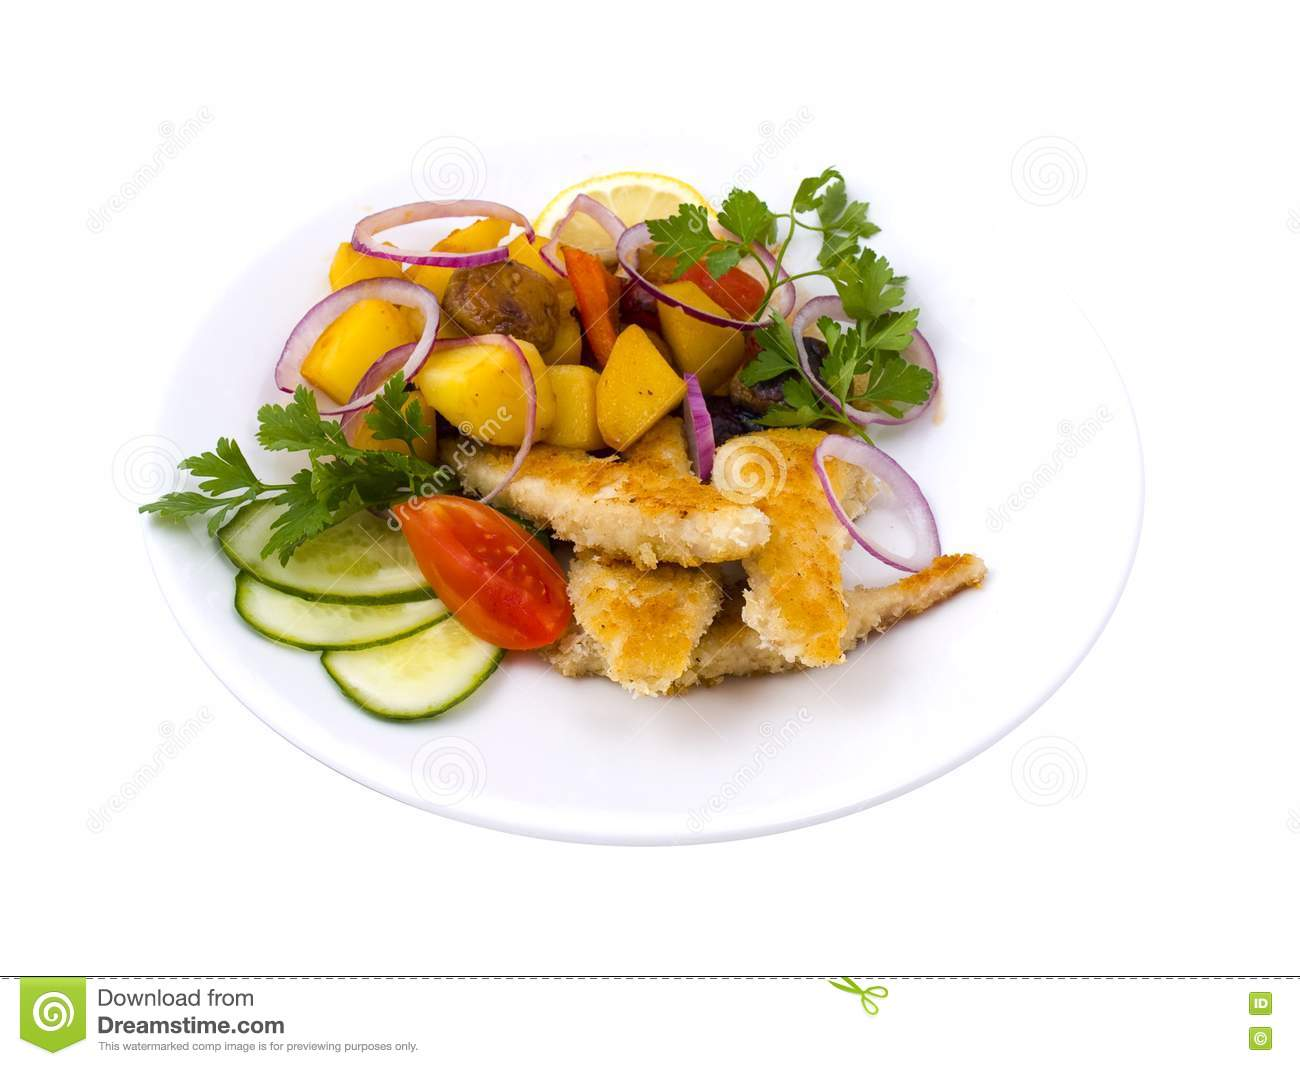 Fish with vegetables royalty free stock photo image for Fish with vegetables